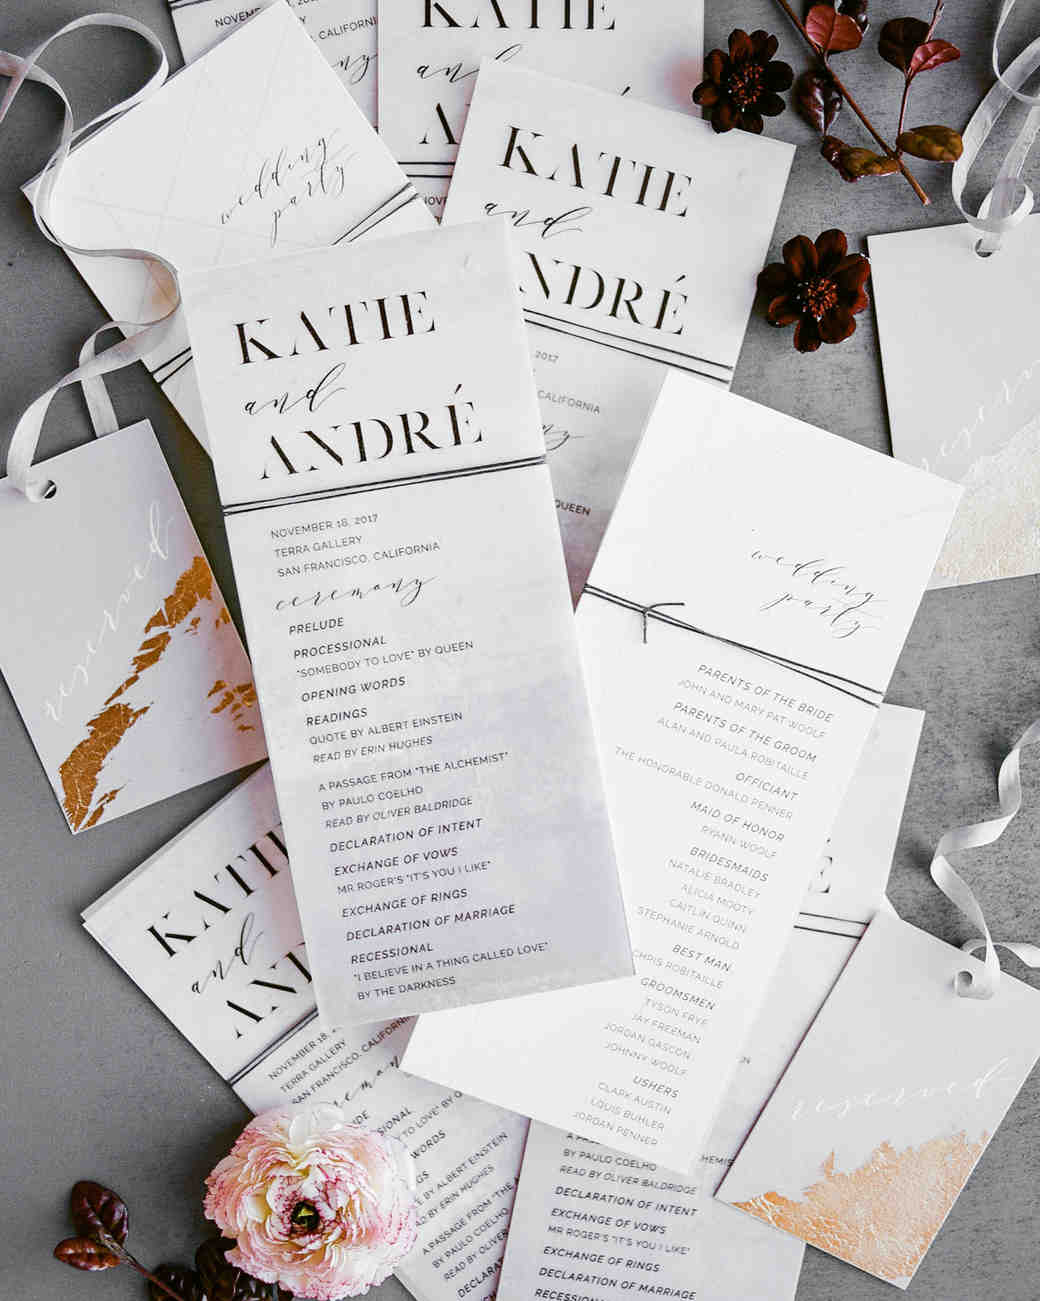 katie andre wedding programs